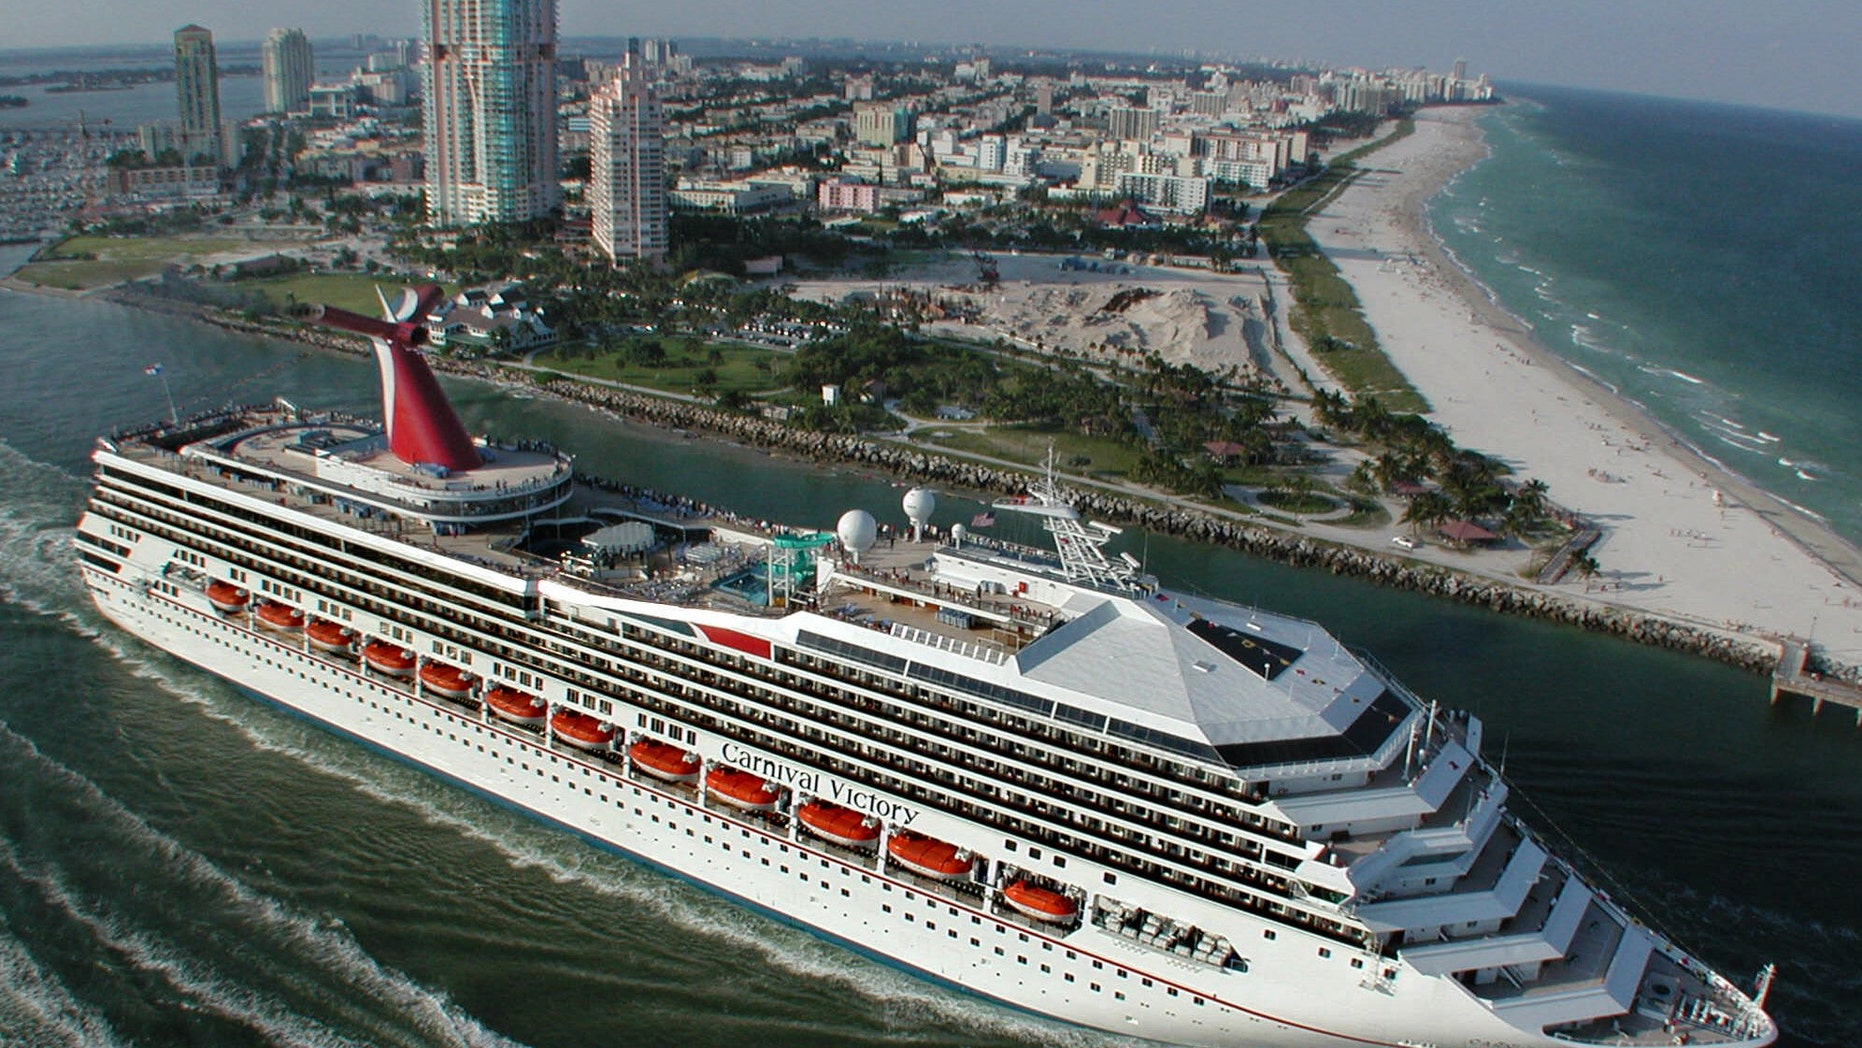 Oct. 15, 2000 - FILE photo: Carnival Cruise Lines ship, the 2,758-passenger Carnival Victory, passes by Miami Beach as it embarks on its inaugural Caribbean voyage. A 6-year-old boy drowned in one of the pools aboard a Carnival ship while at sea, the company said in a statement Monday.